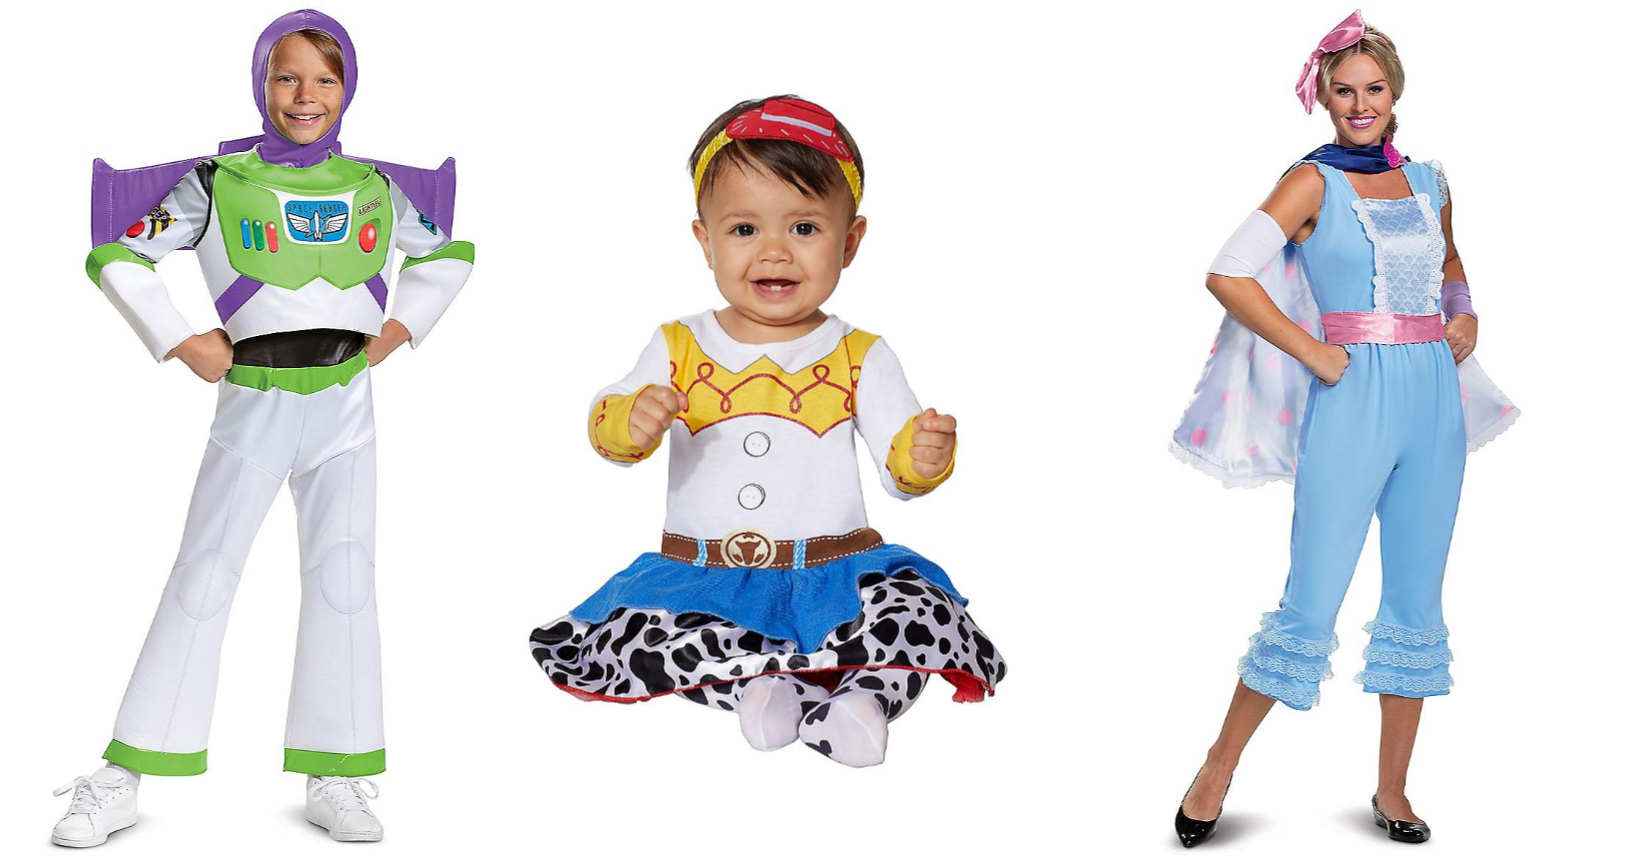 Family Of 4 Disney Halloween Costumes.Family And Parenting New Toy Story Halloween Costumes Have